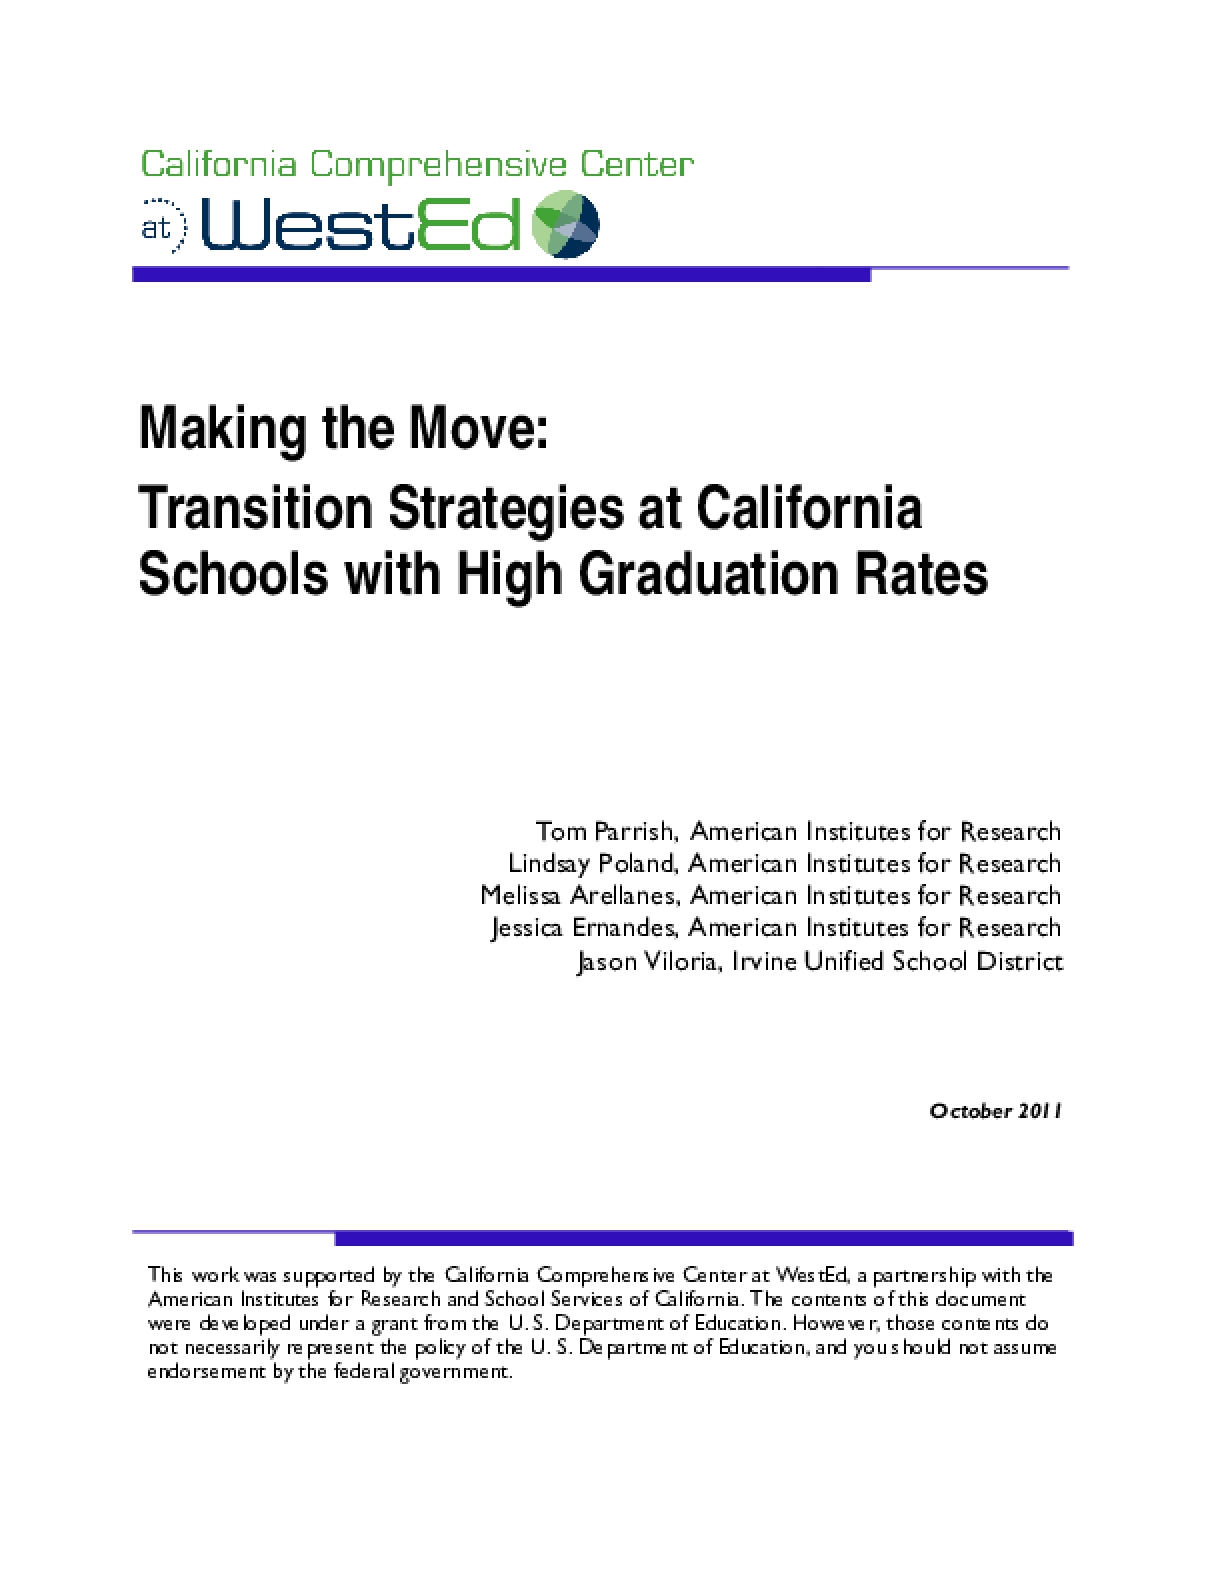 Making the Move: Transition Strategies at California Schools with High Graduation Rates